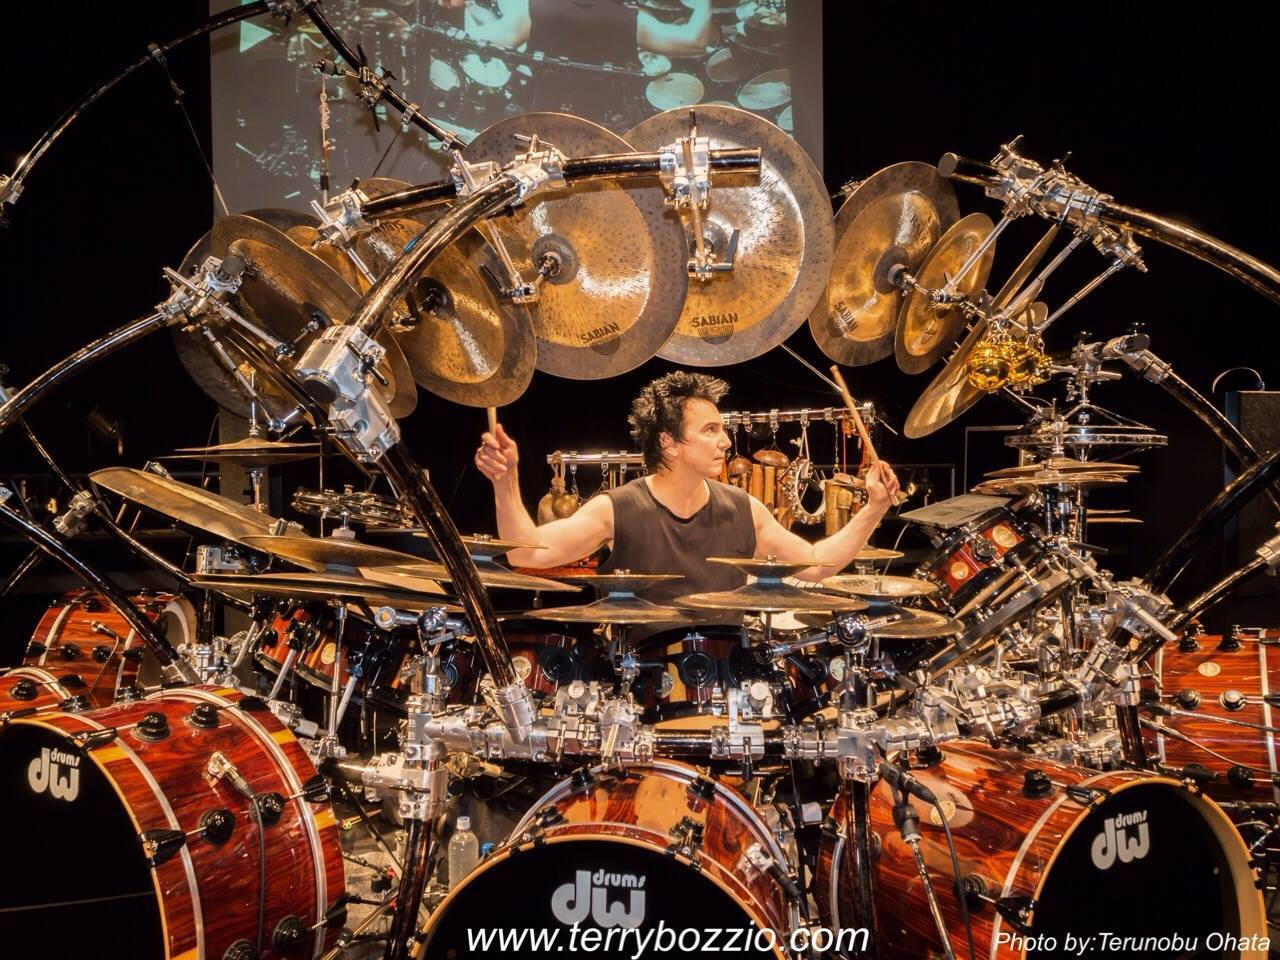 Interview: Terry Bozzio On Frank Zappa, Missing Persons and Solo Career Composer